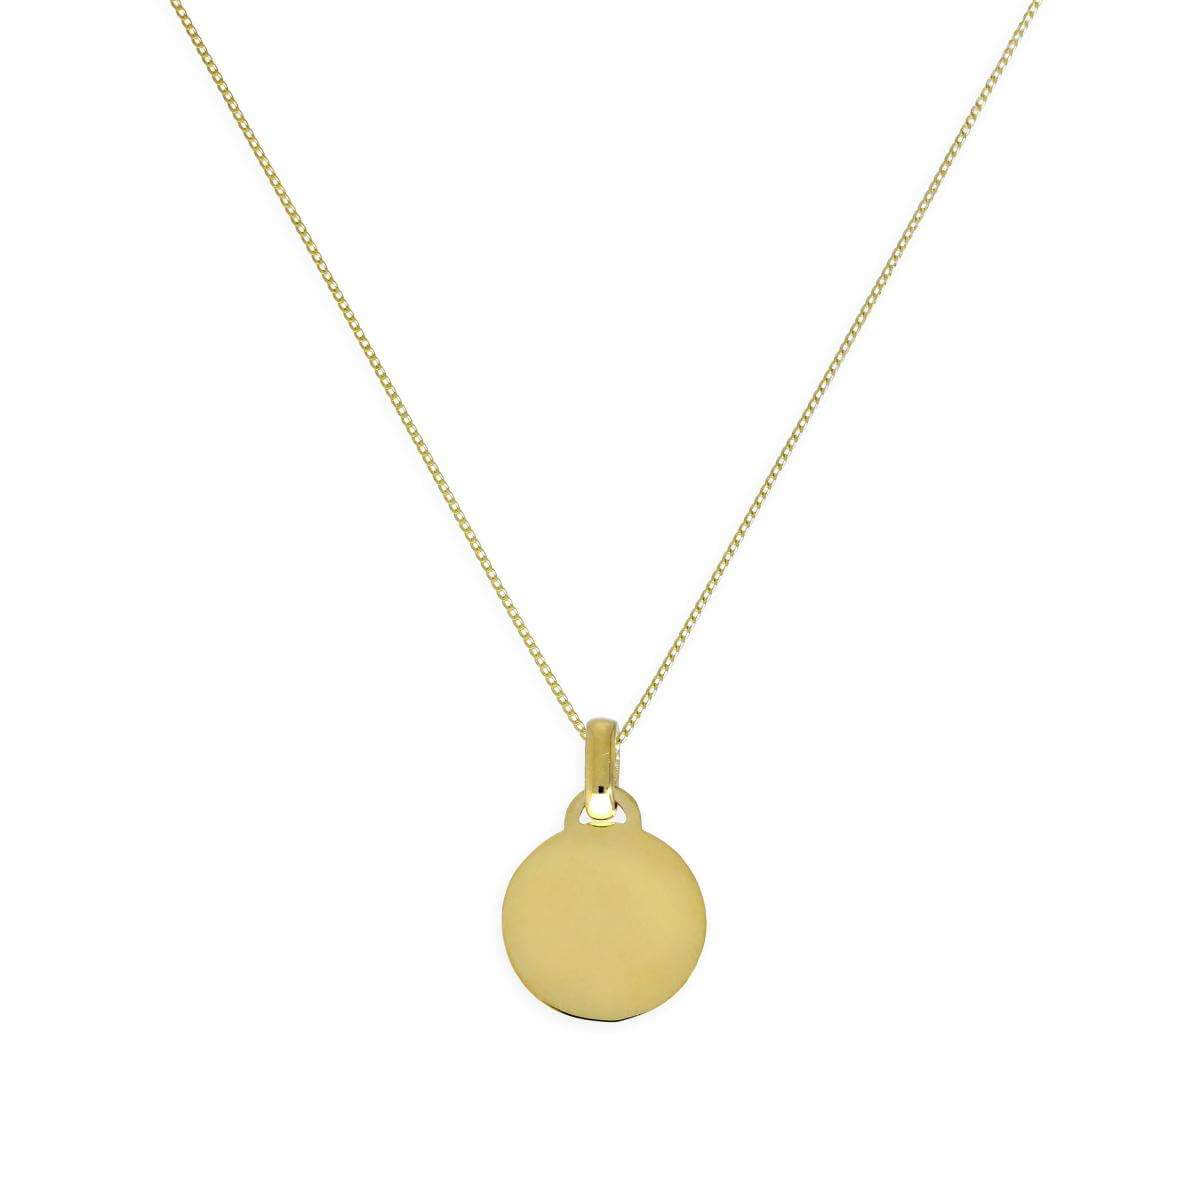 9ct Gold Small Engravable Circle Pendant Necklace 16 - 20 Inches